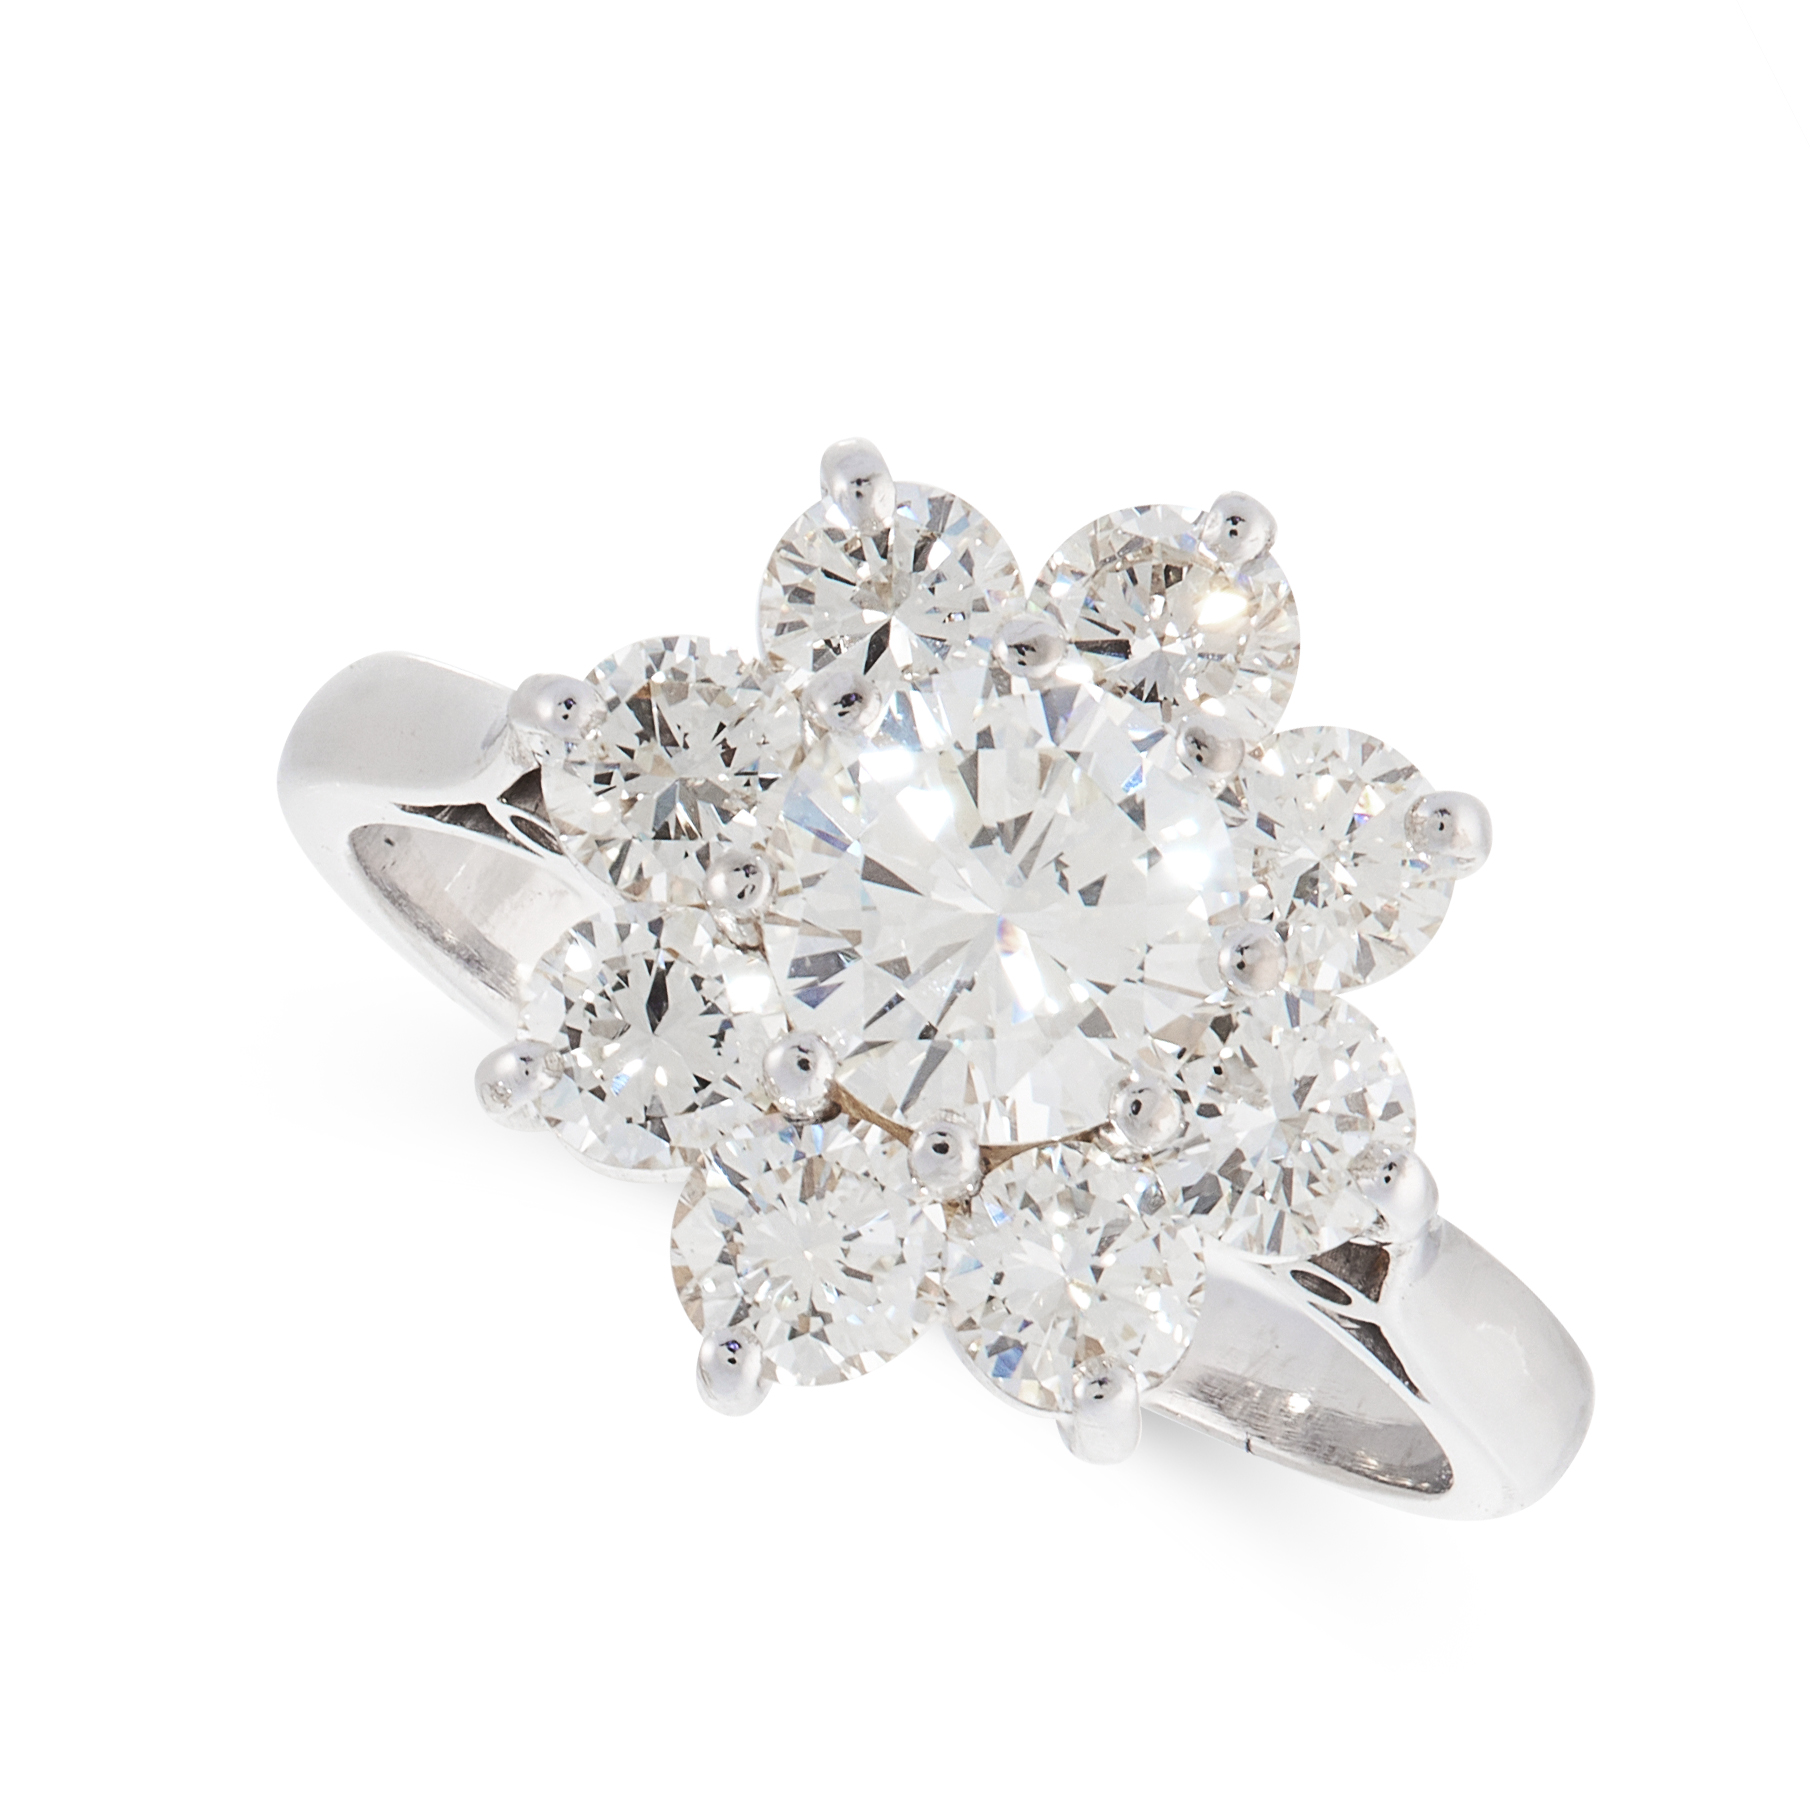 A DIAMOND CLUSTER DRESS RING in 18ct white gold, set with a round cut diamond of 0.97 carats, within